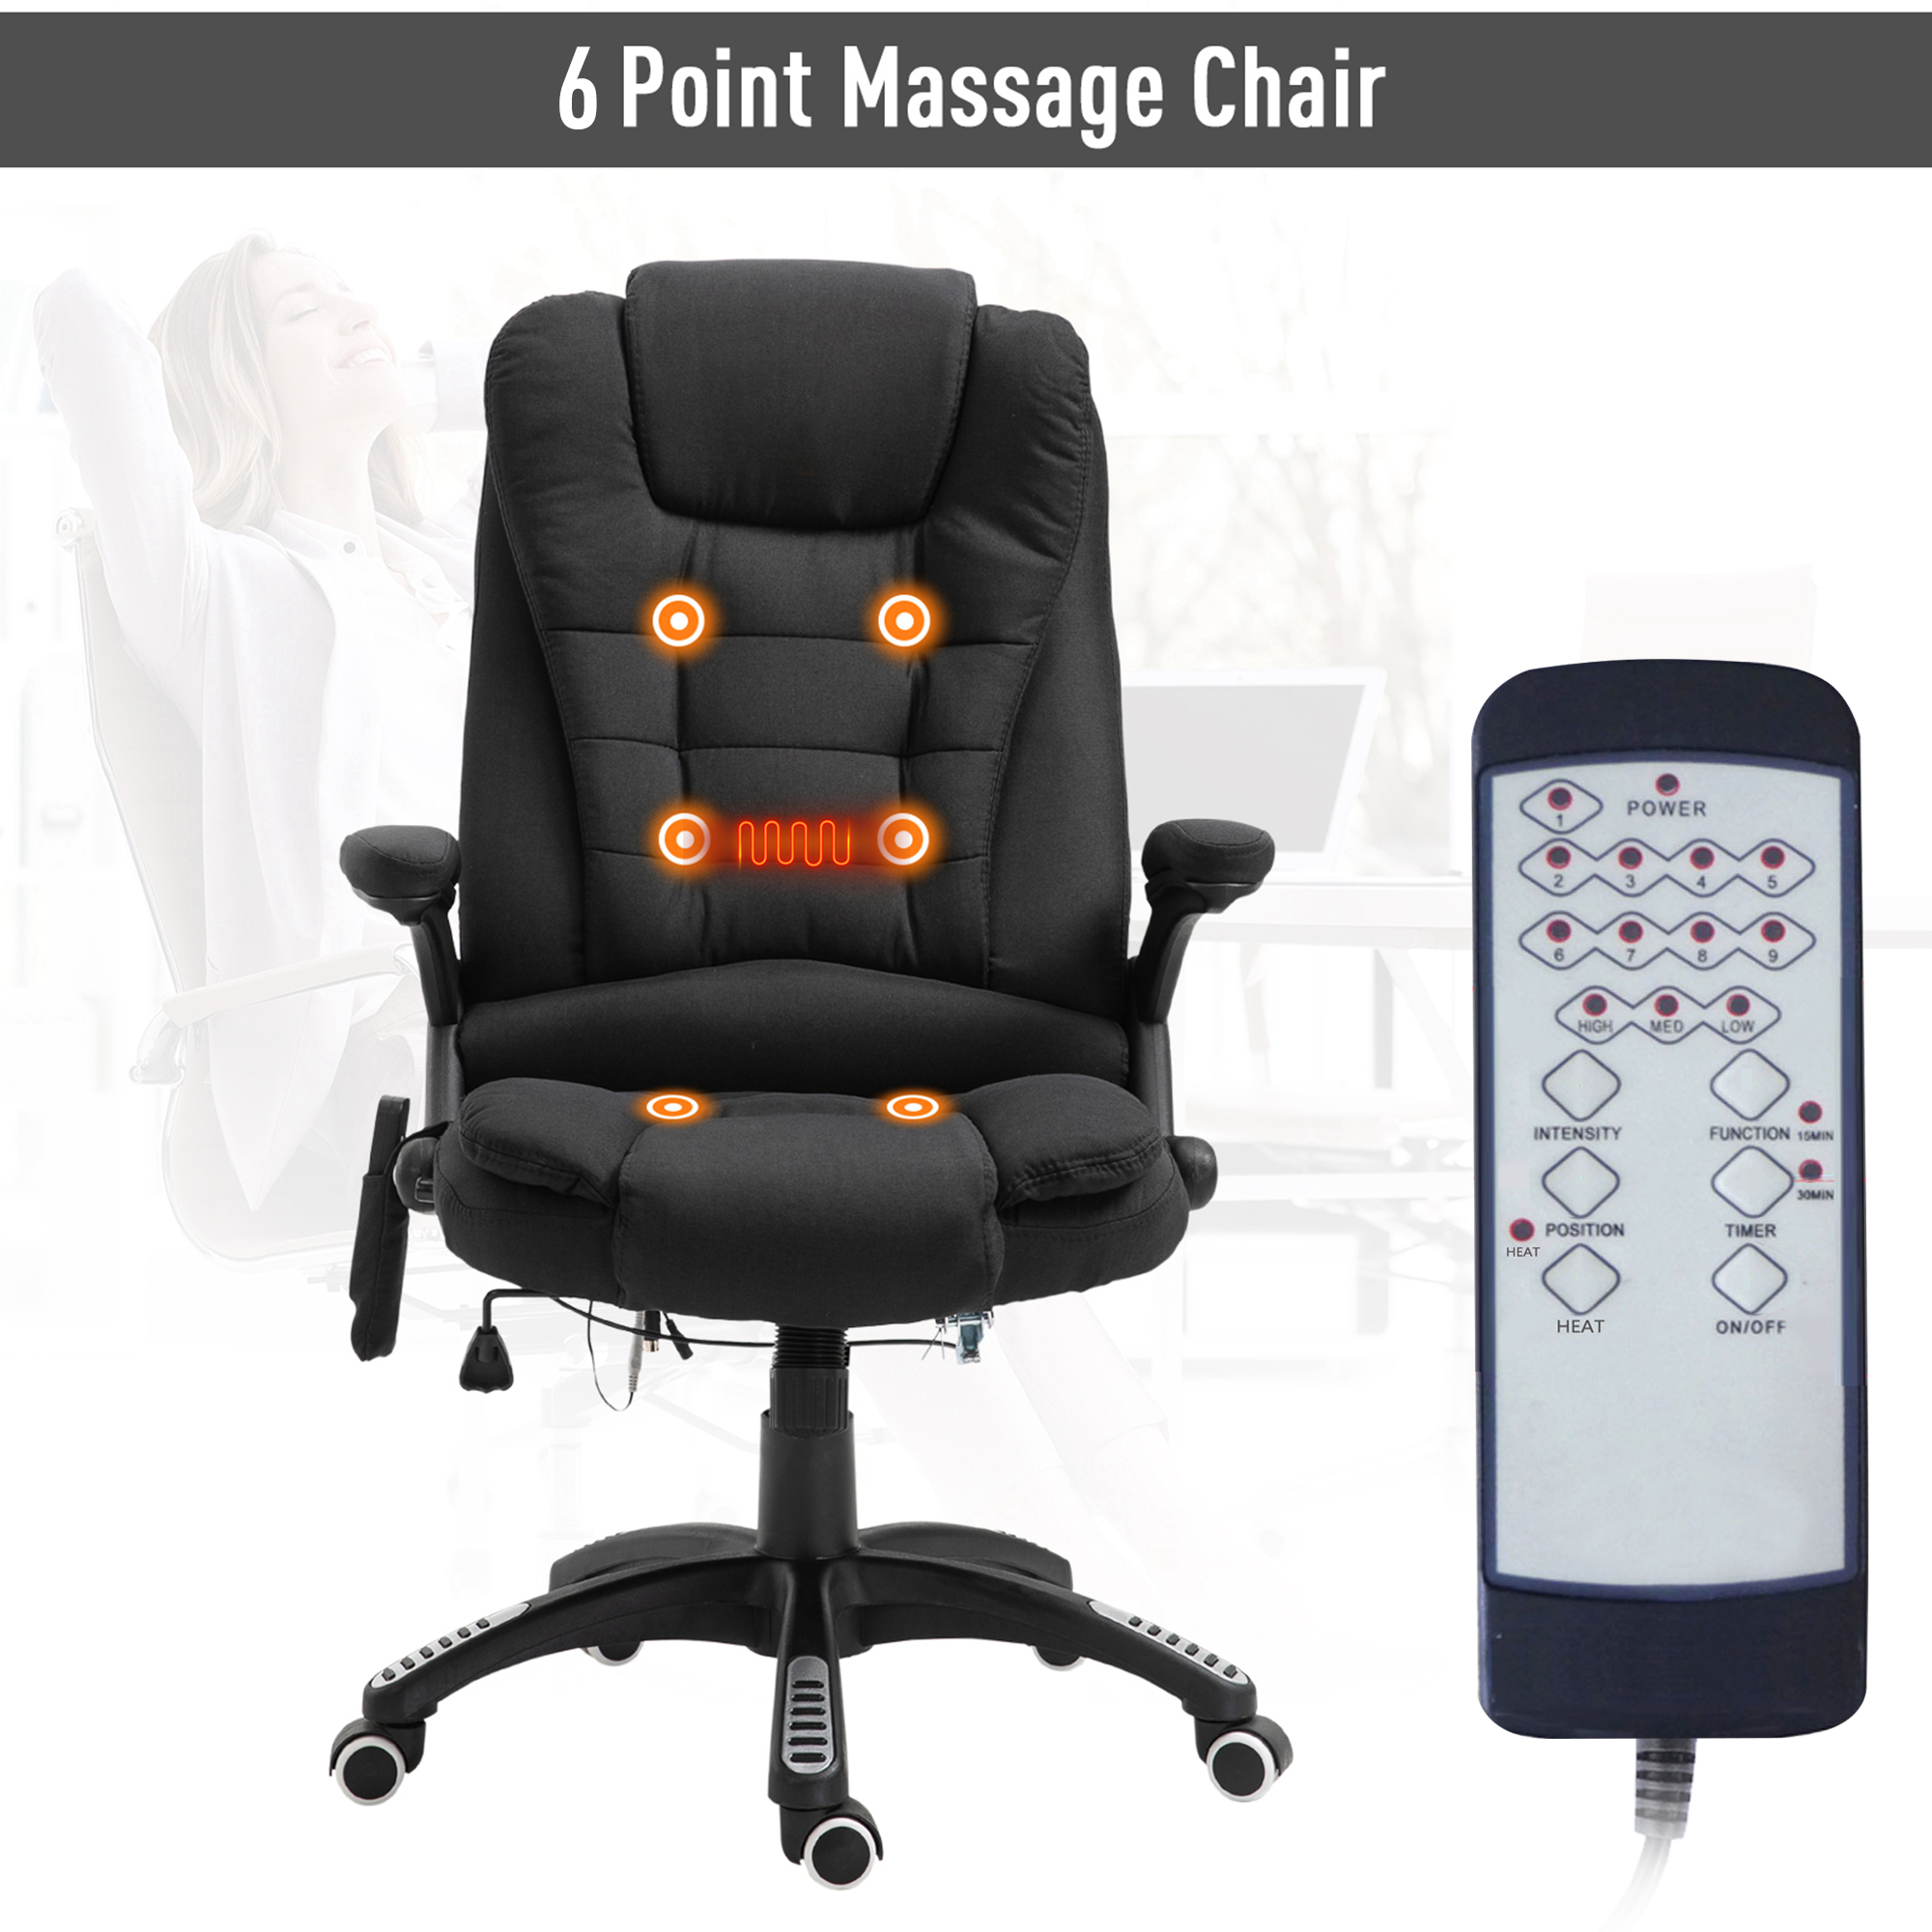 thumbnail 4 - Executive Reclining Chair 130°w/6 Heating Massage Points Relaxing Headrest